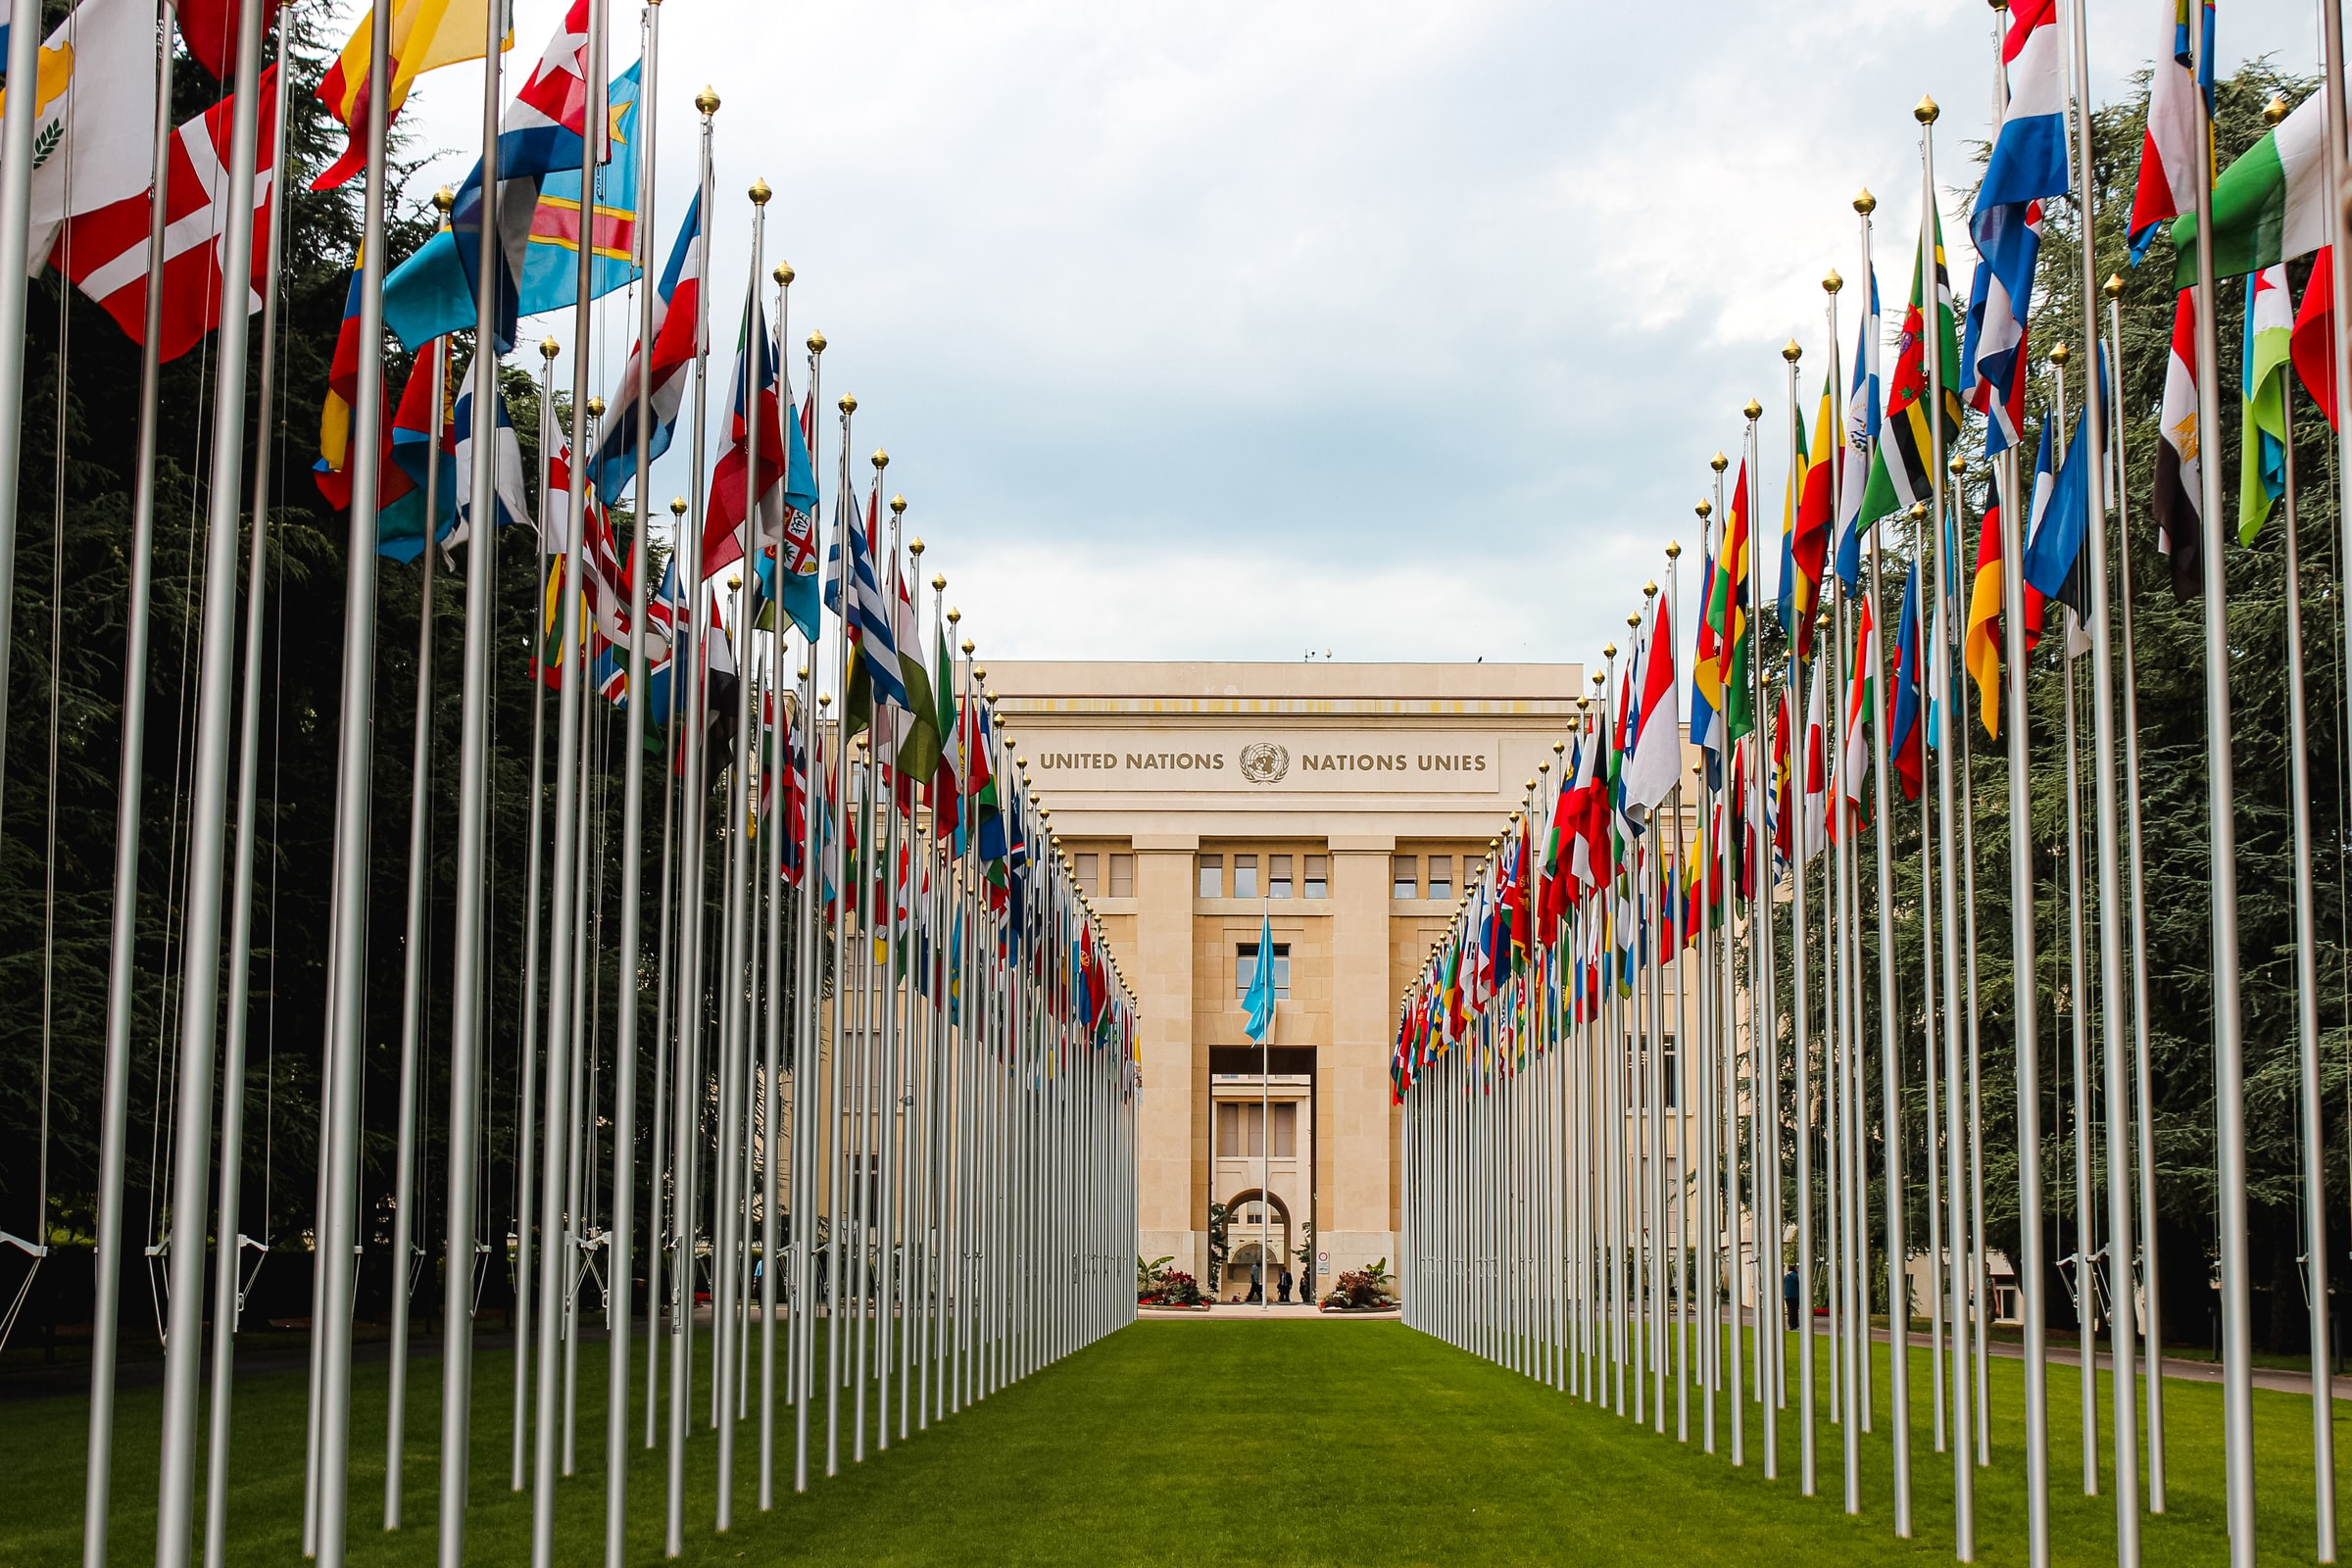 Dozens of flagpoles with international country flags in front of a United Nations building